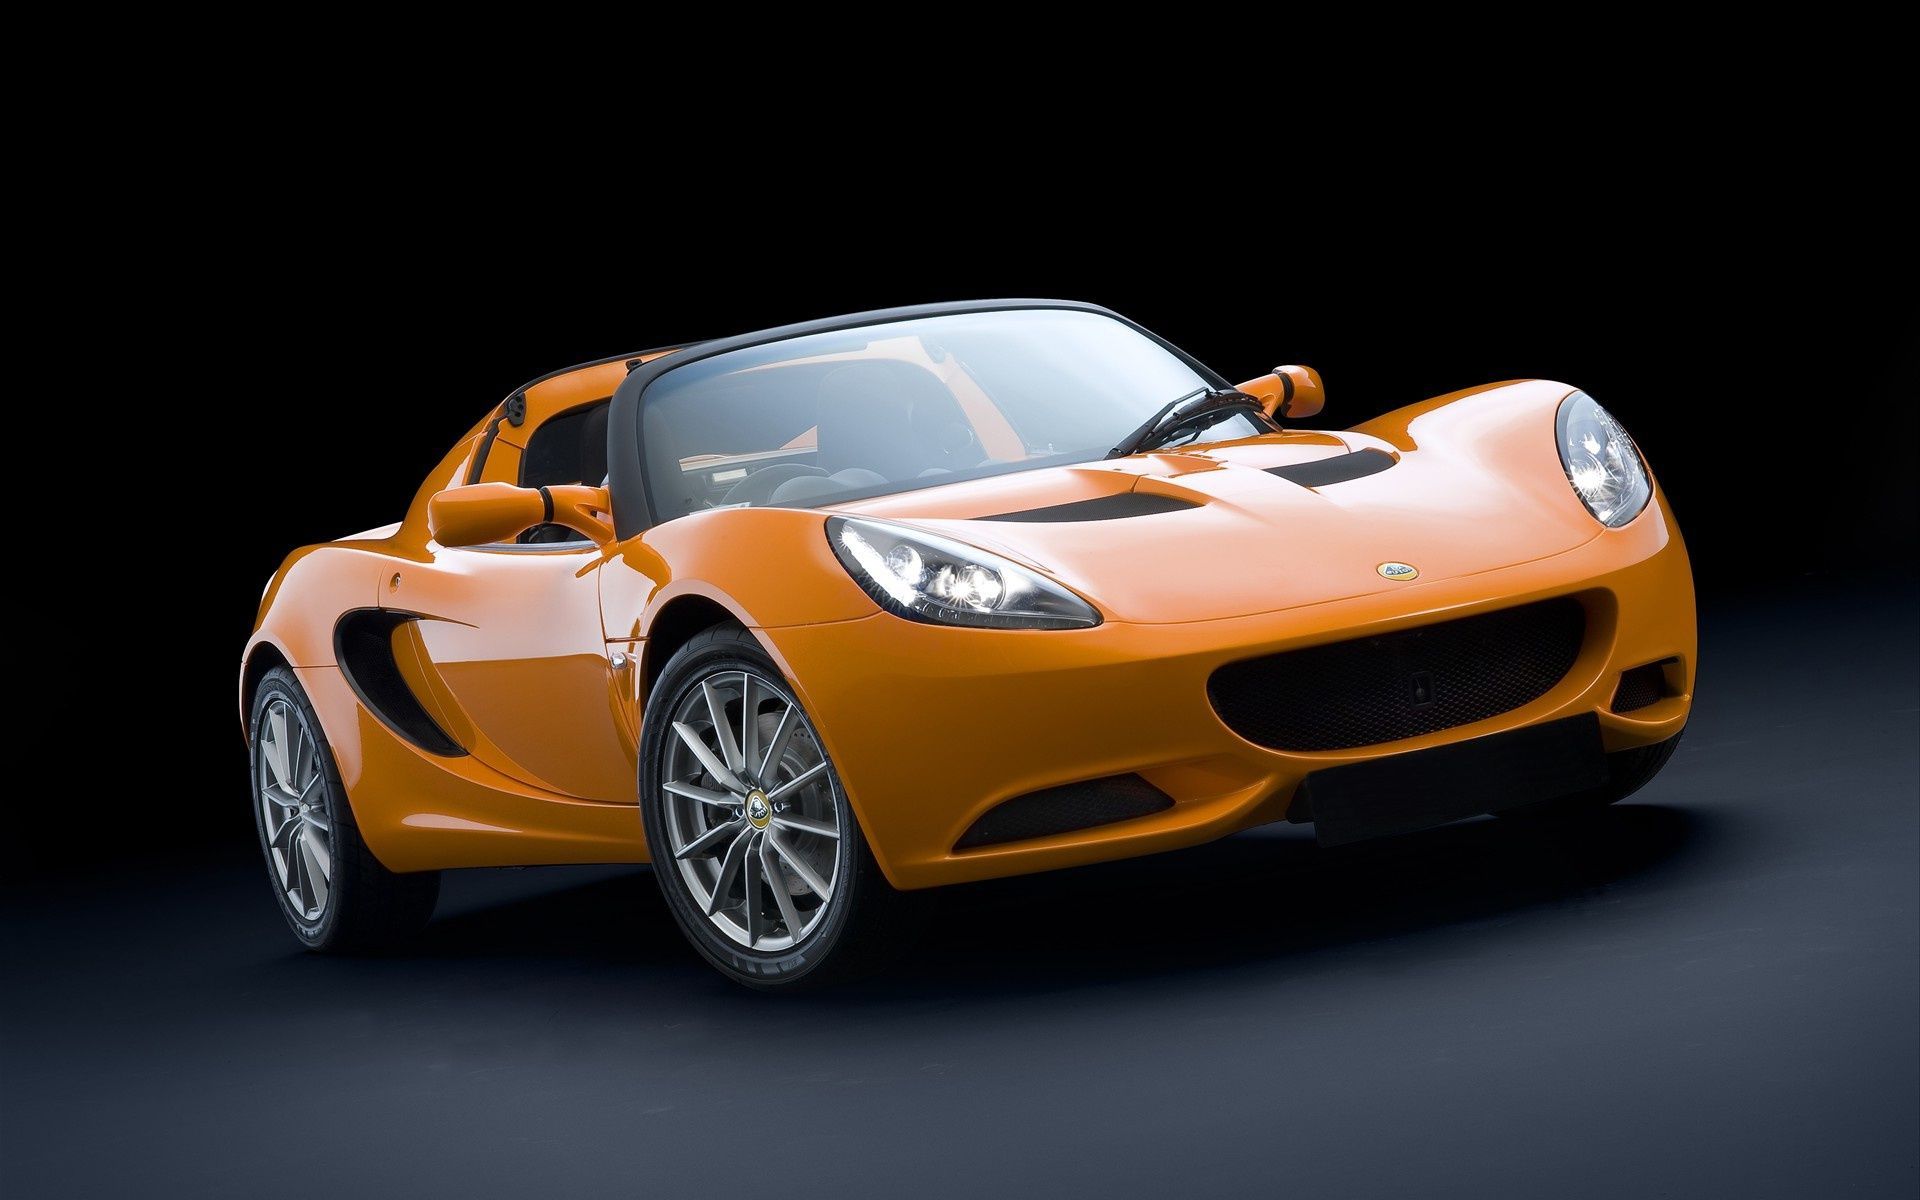 Amazing Lotus Elise Sports HD Picture Wallpapers Super